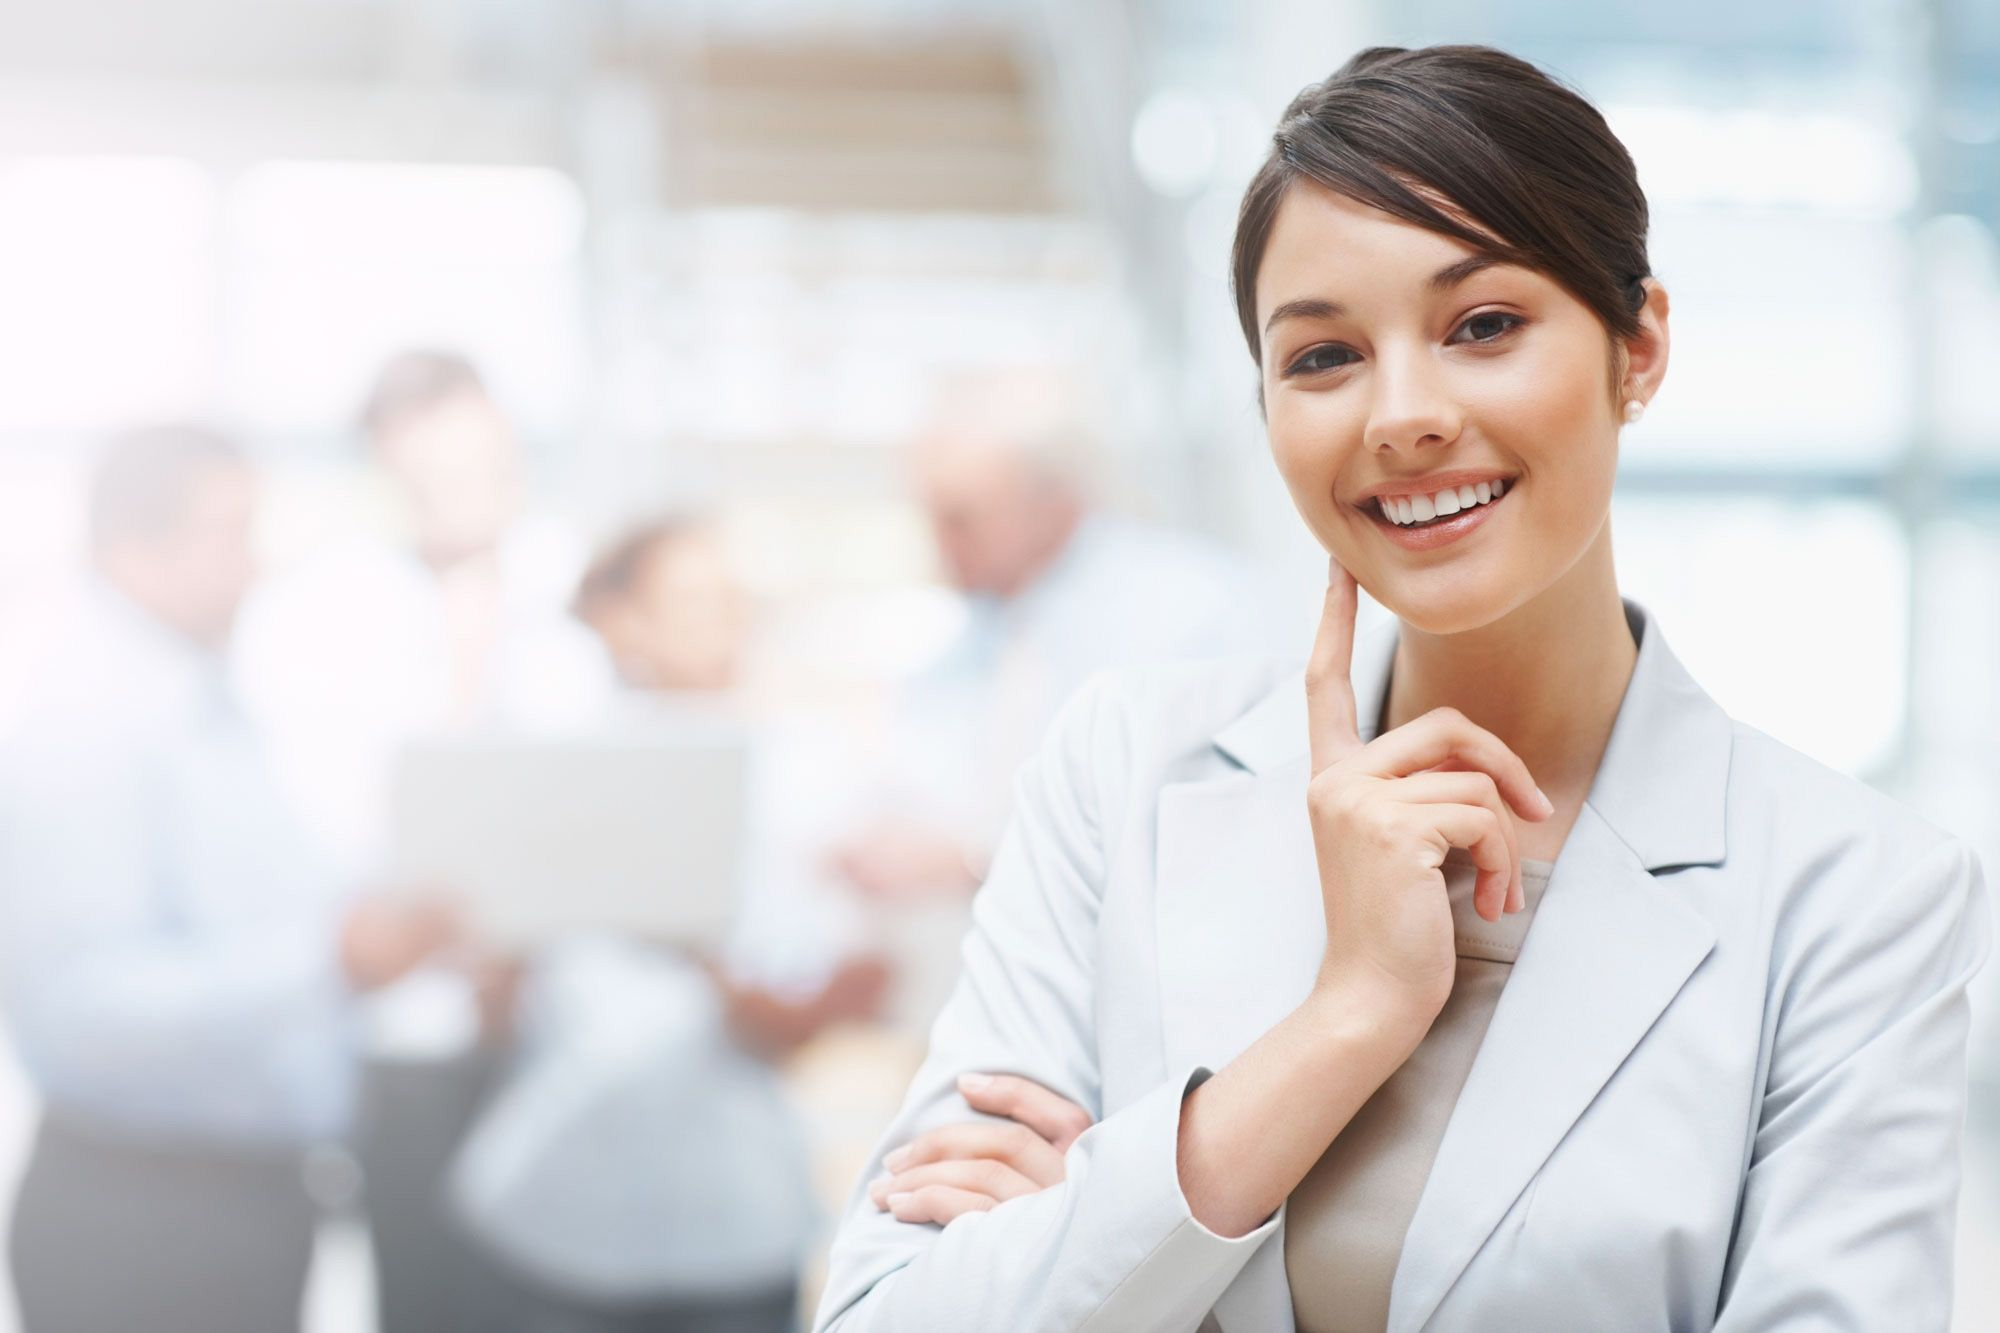 Alltek Services is the premiere Healthcare IT Support